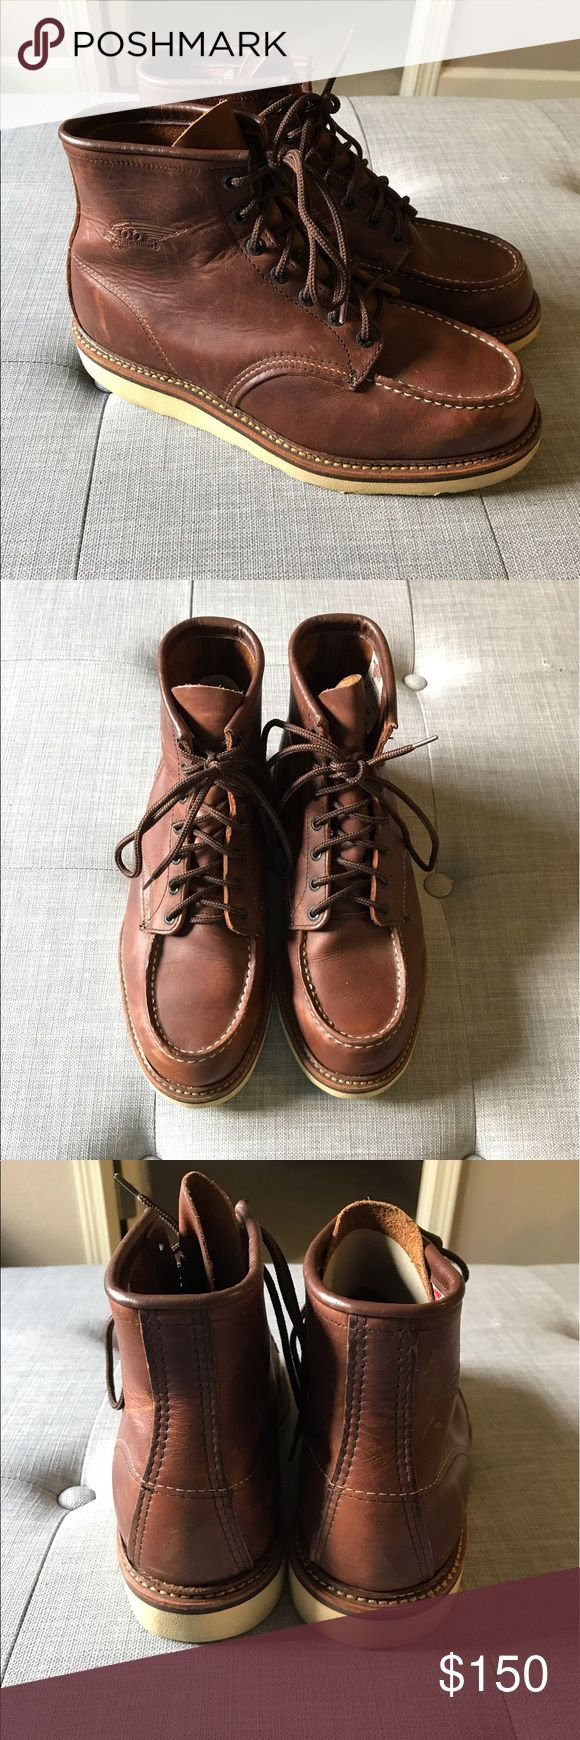 Red Wing 1905 Centennial Boots EUC! Awesome boots, you'll keep these forever! Red Wing Shoes Shoes Boots